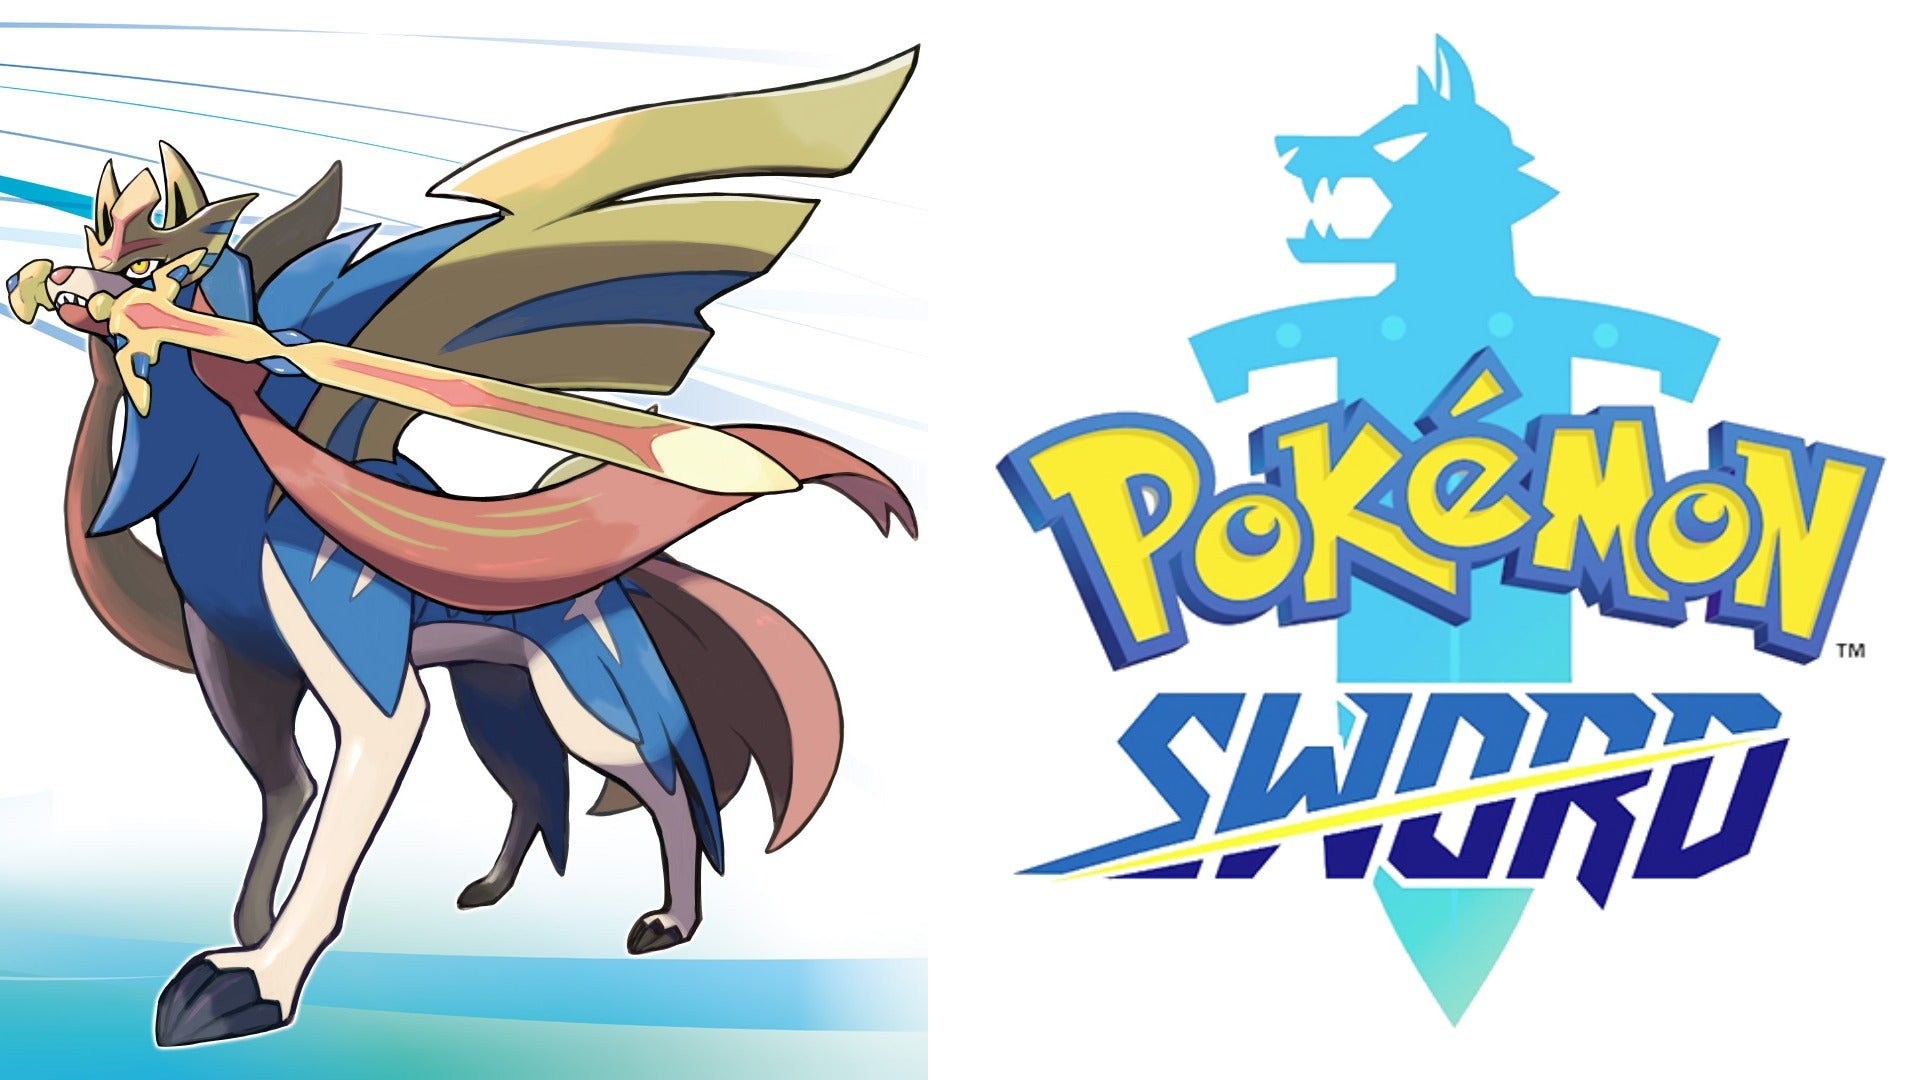 The exclusive Pokémon in Sword and Shield cover 1 pokemon faction